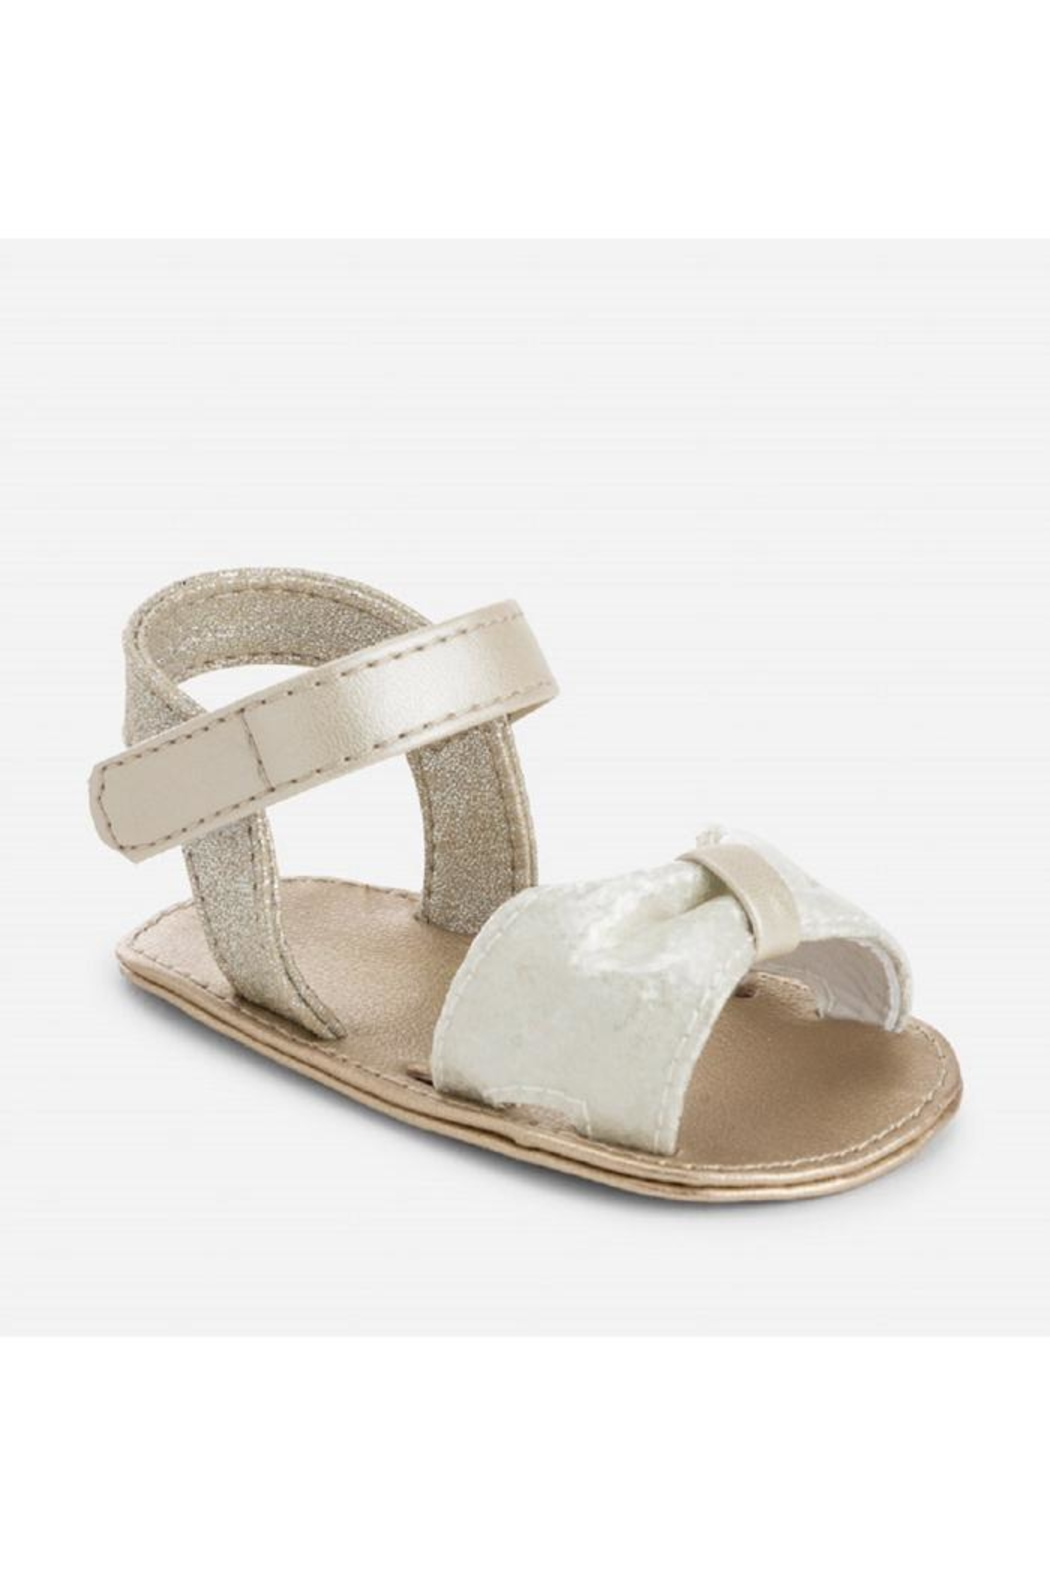 Mayoral Luxe Bow Sandal - Main Image